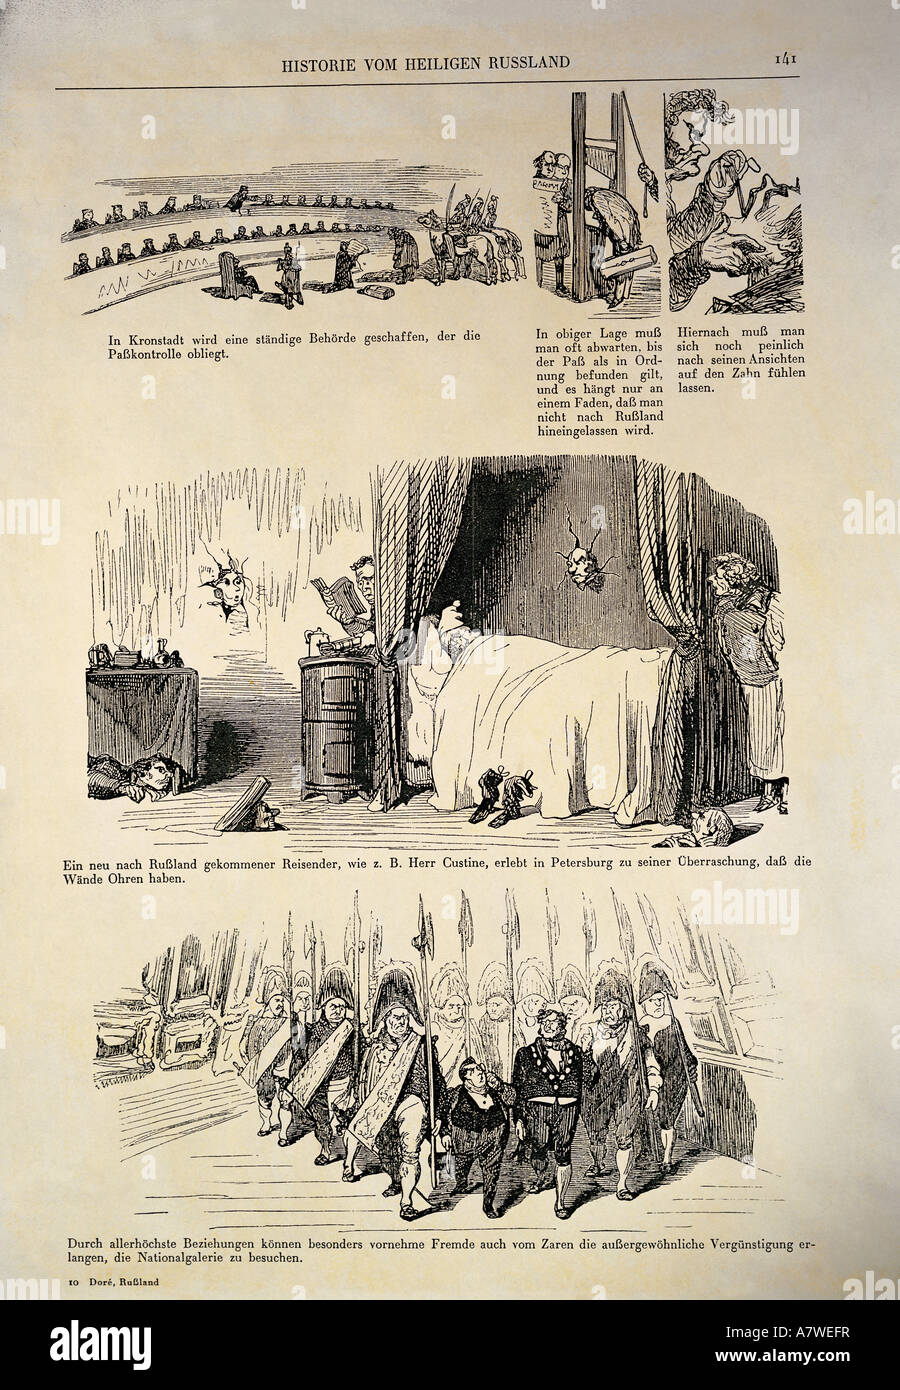 fine arts, Doré, Gustave (1832 - 1883), 'History of the Holy Russia', 1854, German edition, page 141, - Stock Image